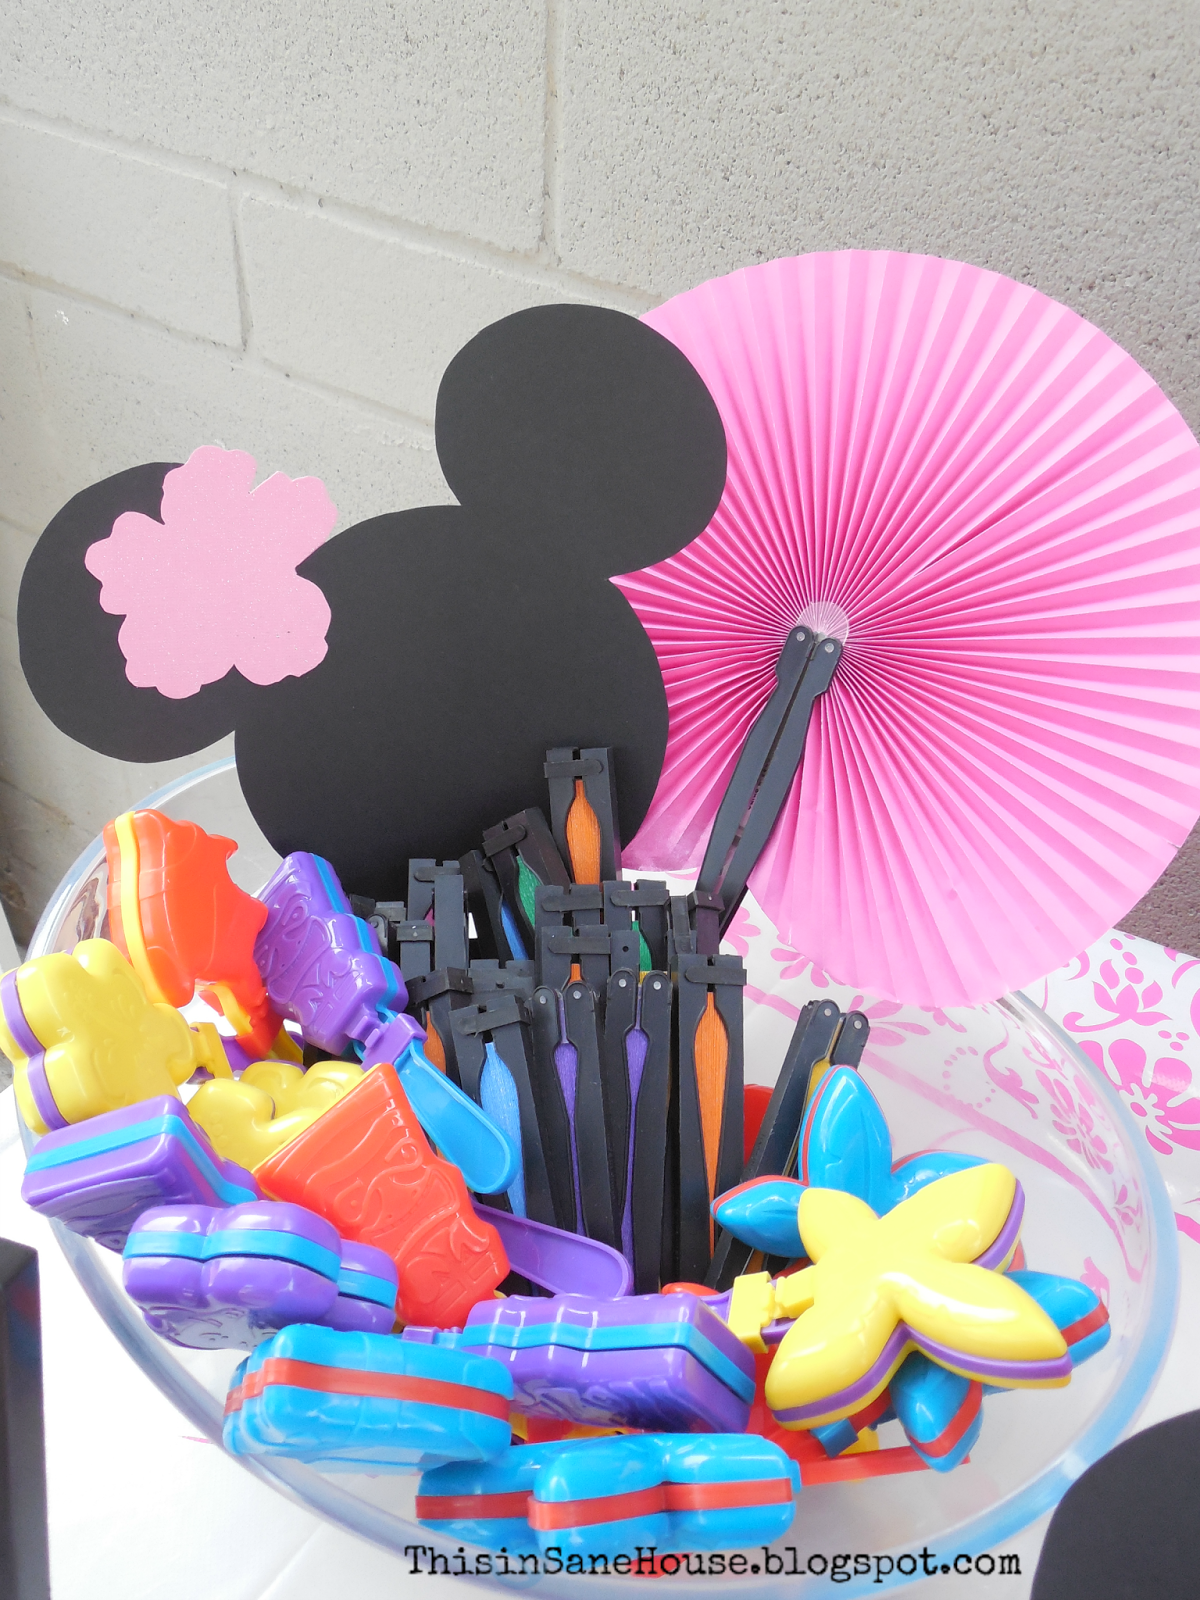 Favors For Kids And Adults Alike Paper Fans It Was Hot Tropical Clackers